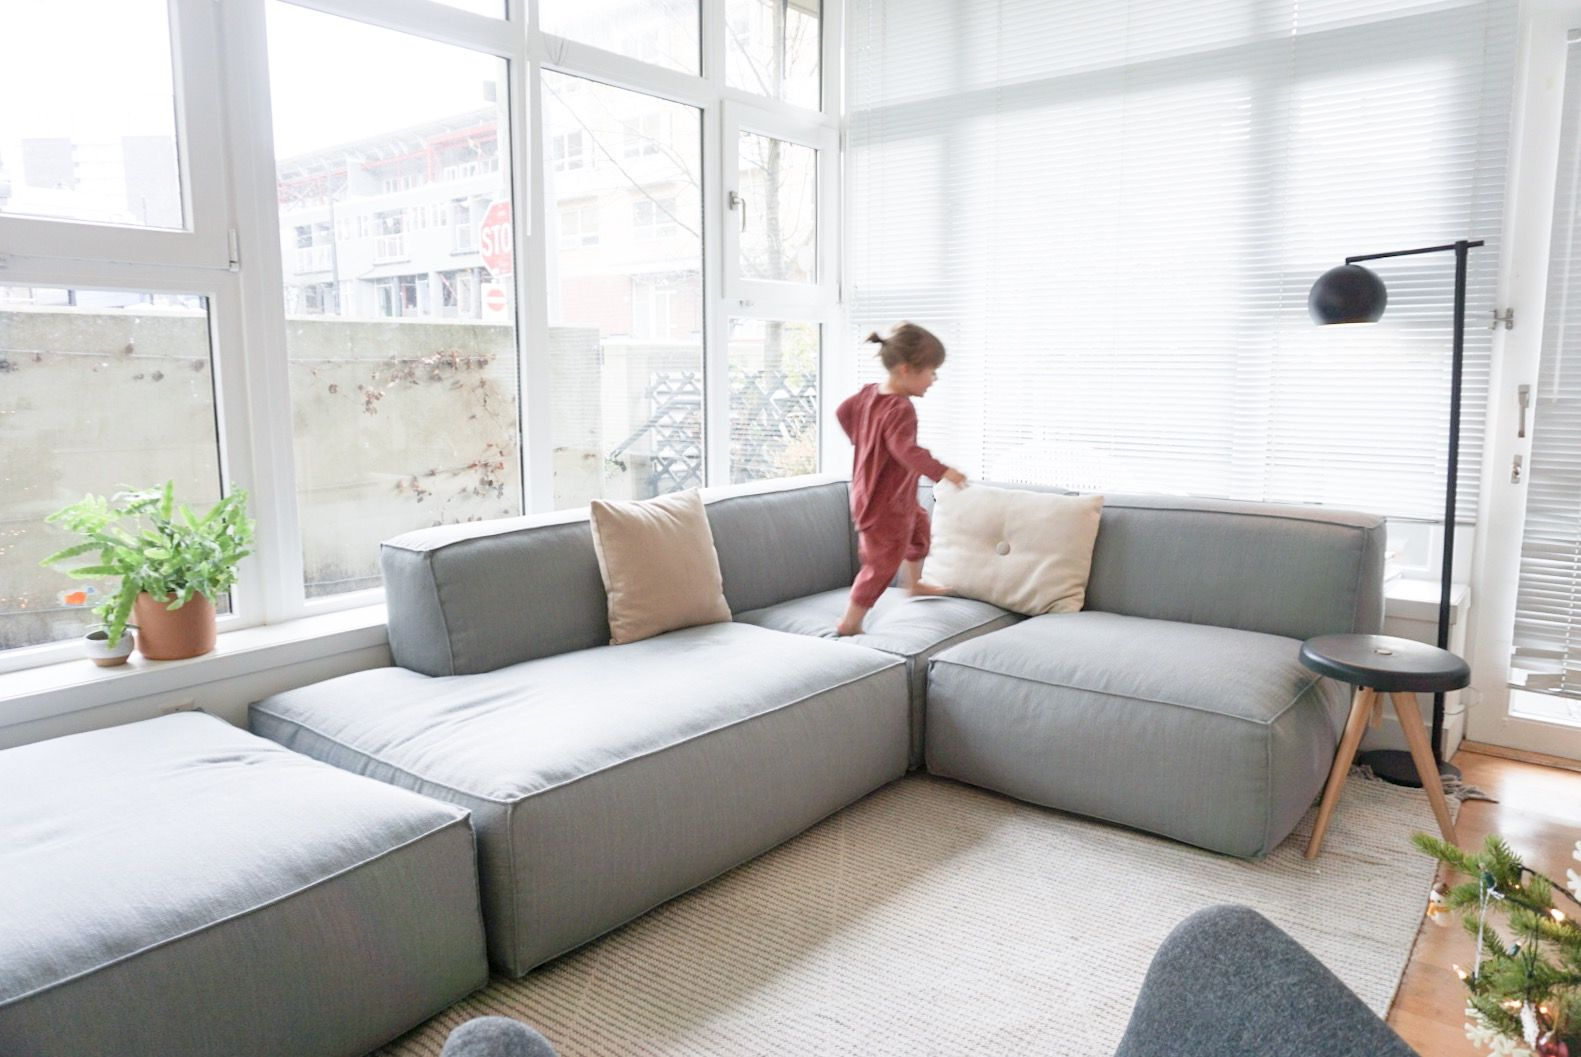 A Modular Sofa For Our Small Space 600sqftandababy Sofas For Small Spaces Modular Sofa Small Space Living Room